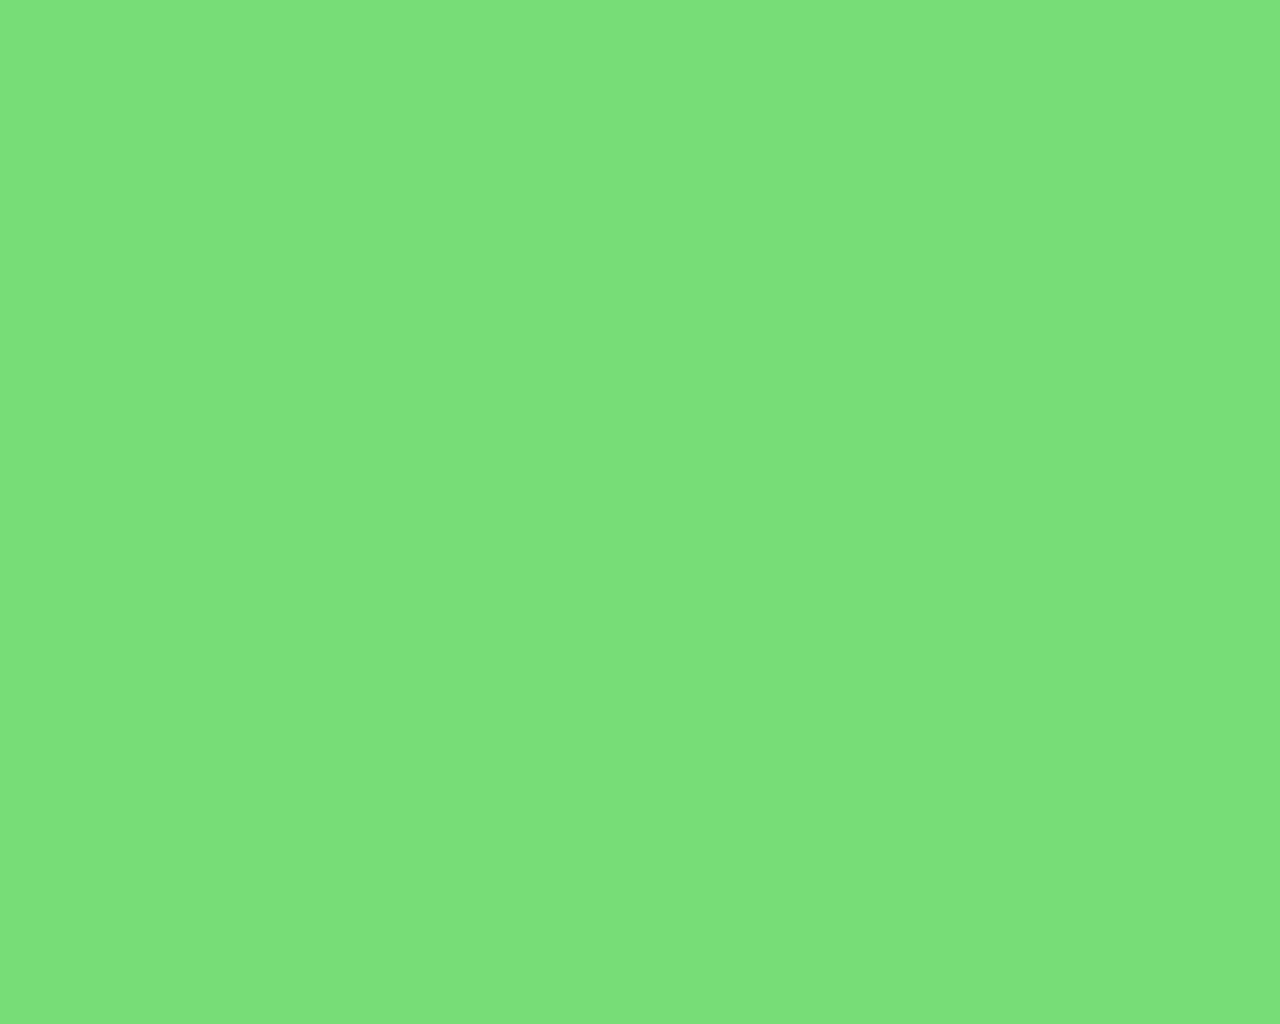 1280x1024 Pastel Green Solid Color Background